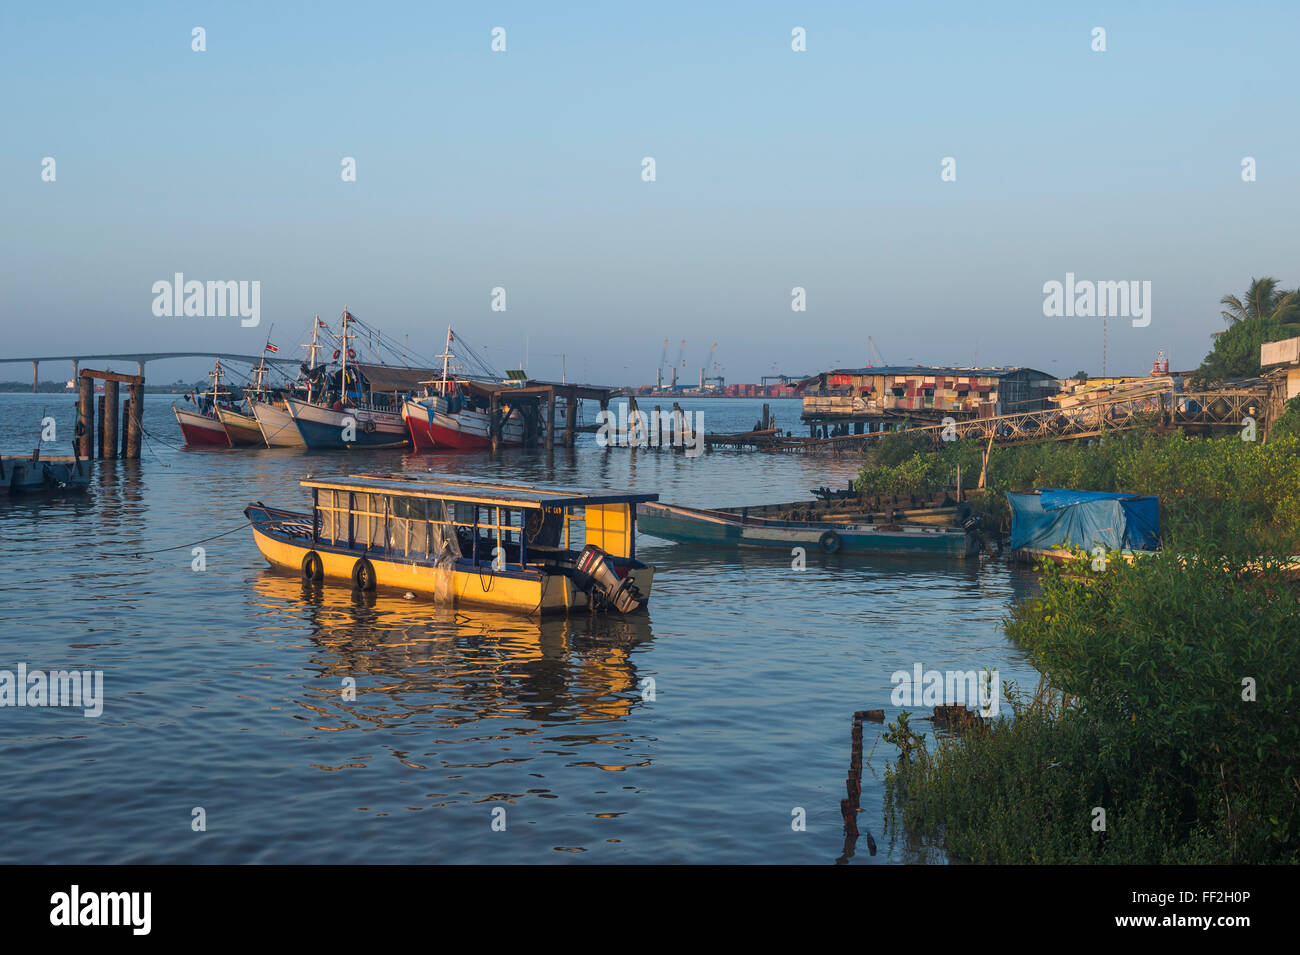 RMittRMe fishing boats on the Suriname River, Paramaribo, Surinam, South America - Stock Image